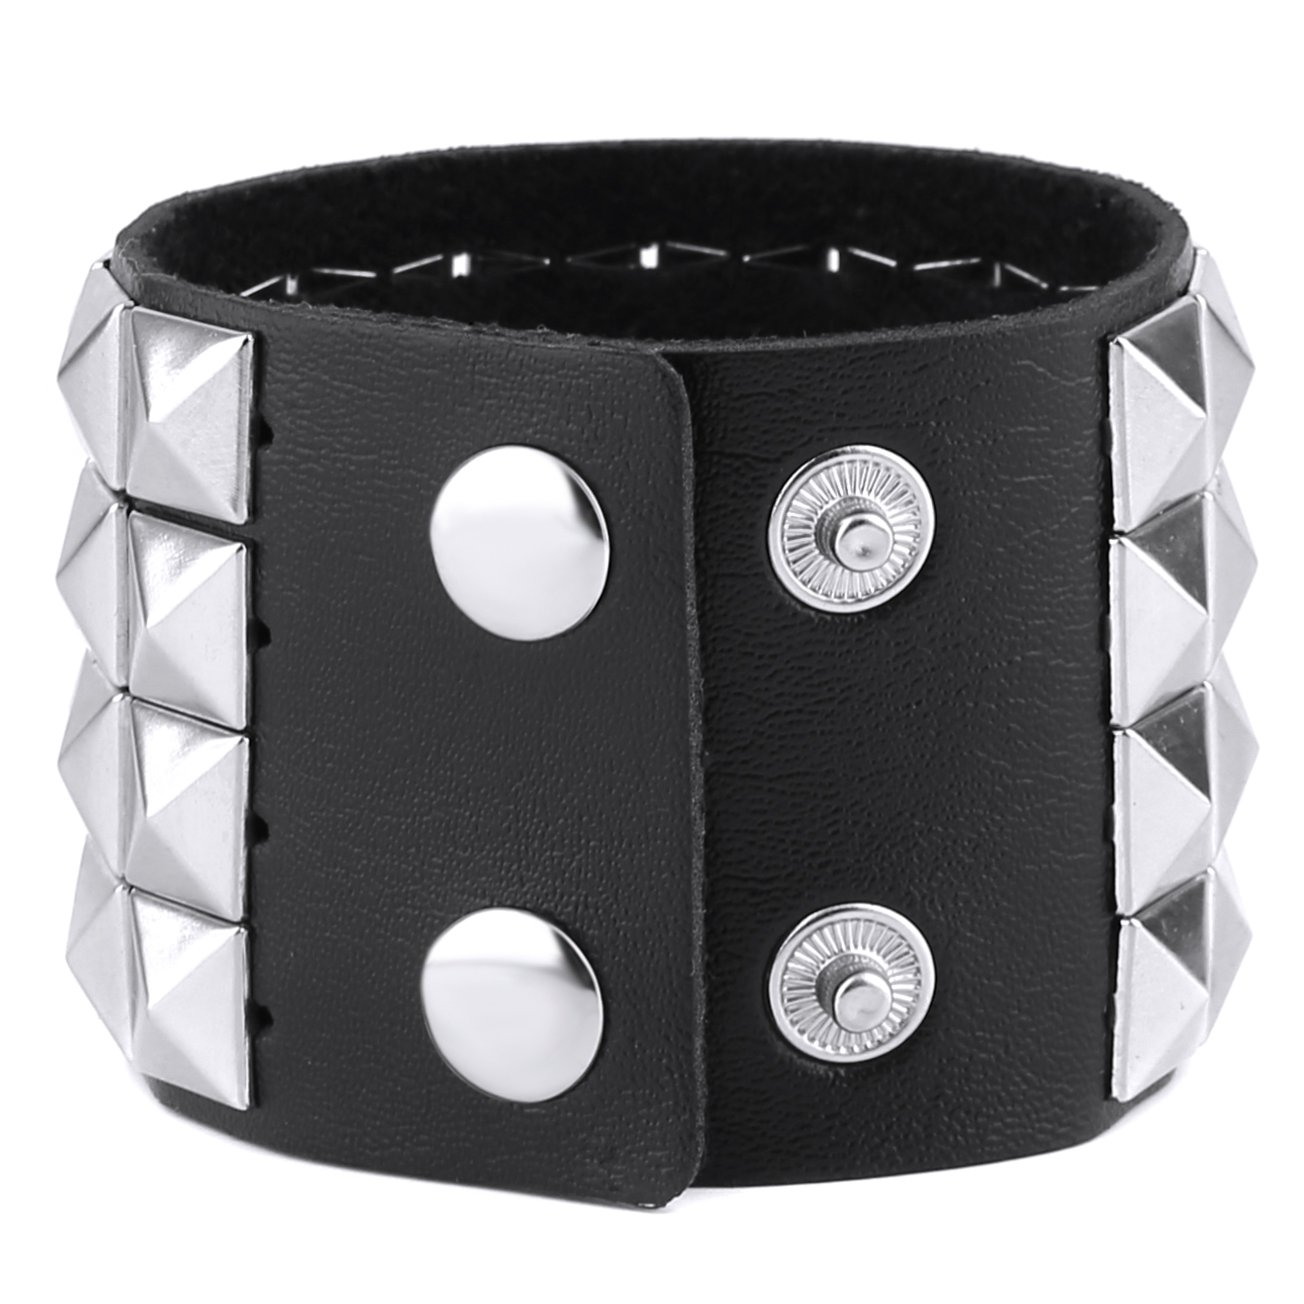 HZMAN Unisex Black Metal Nickel Pyramid Studs Punk Rock Biker Wide Strap Leather Bracelet